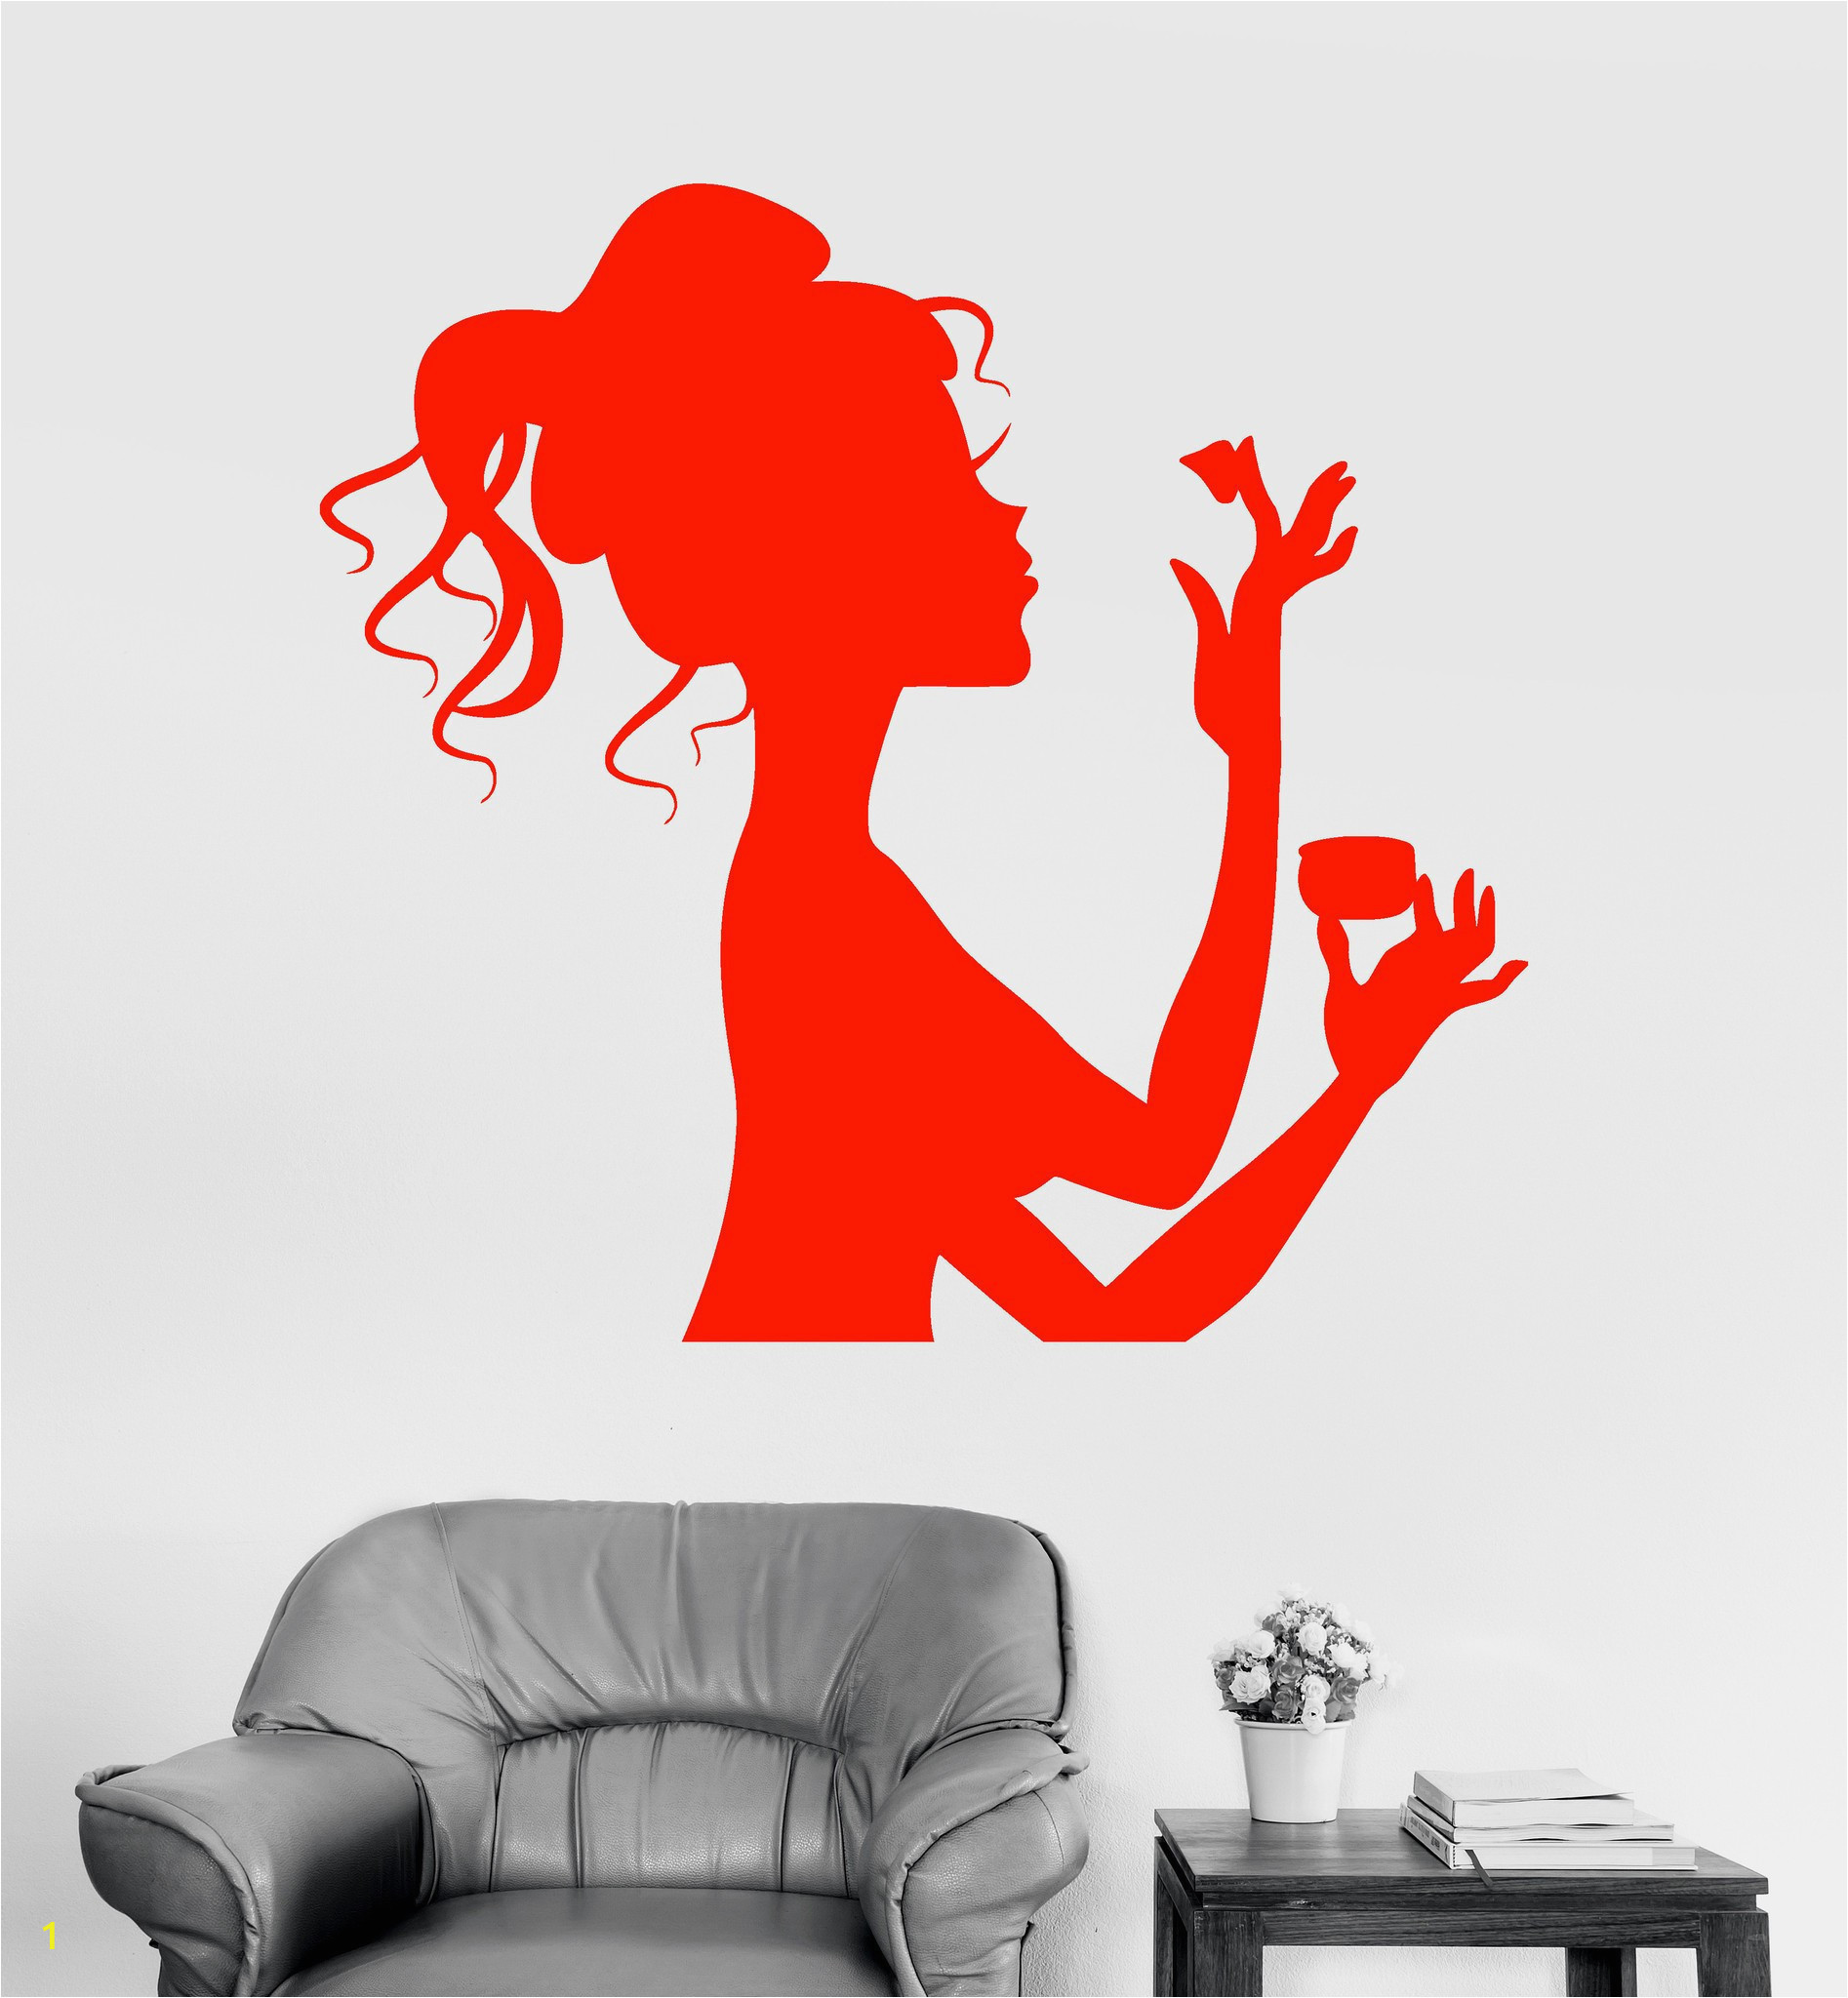 wall decals for bedroom unique 1 kirkland wall decor home design 0d relating to red bathroom wall art of red bathroom wall art